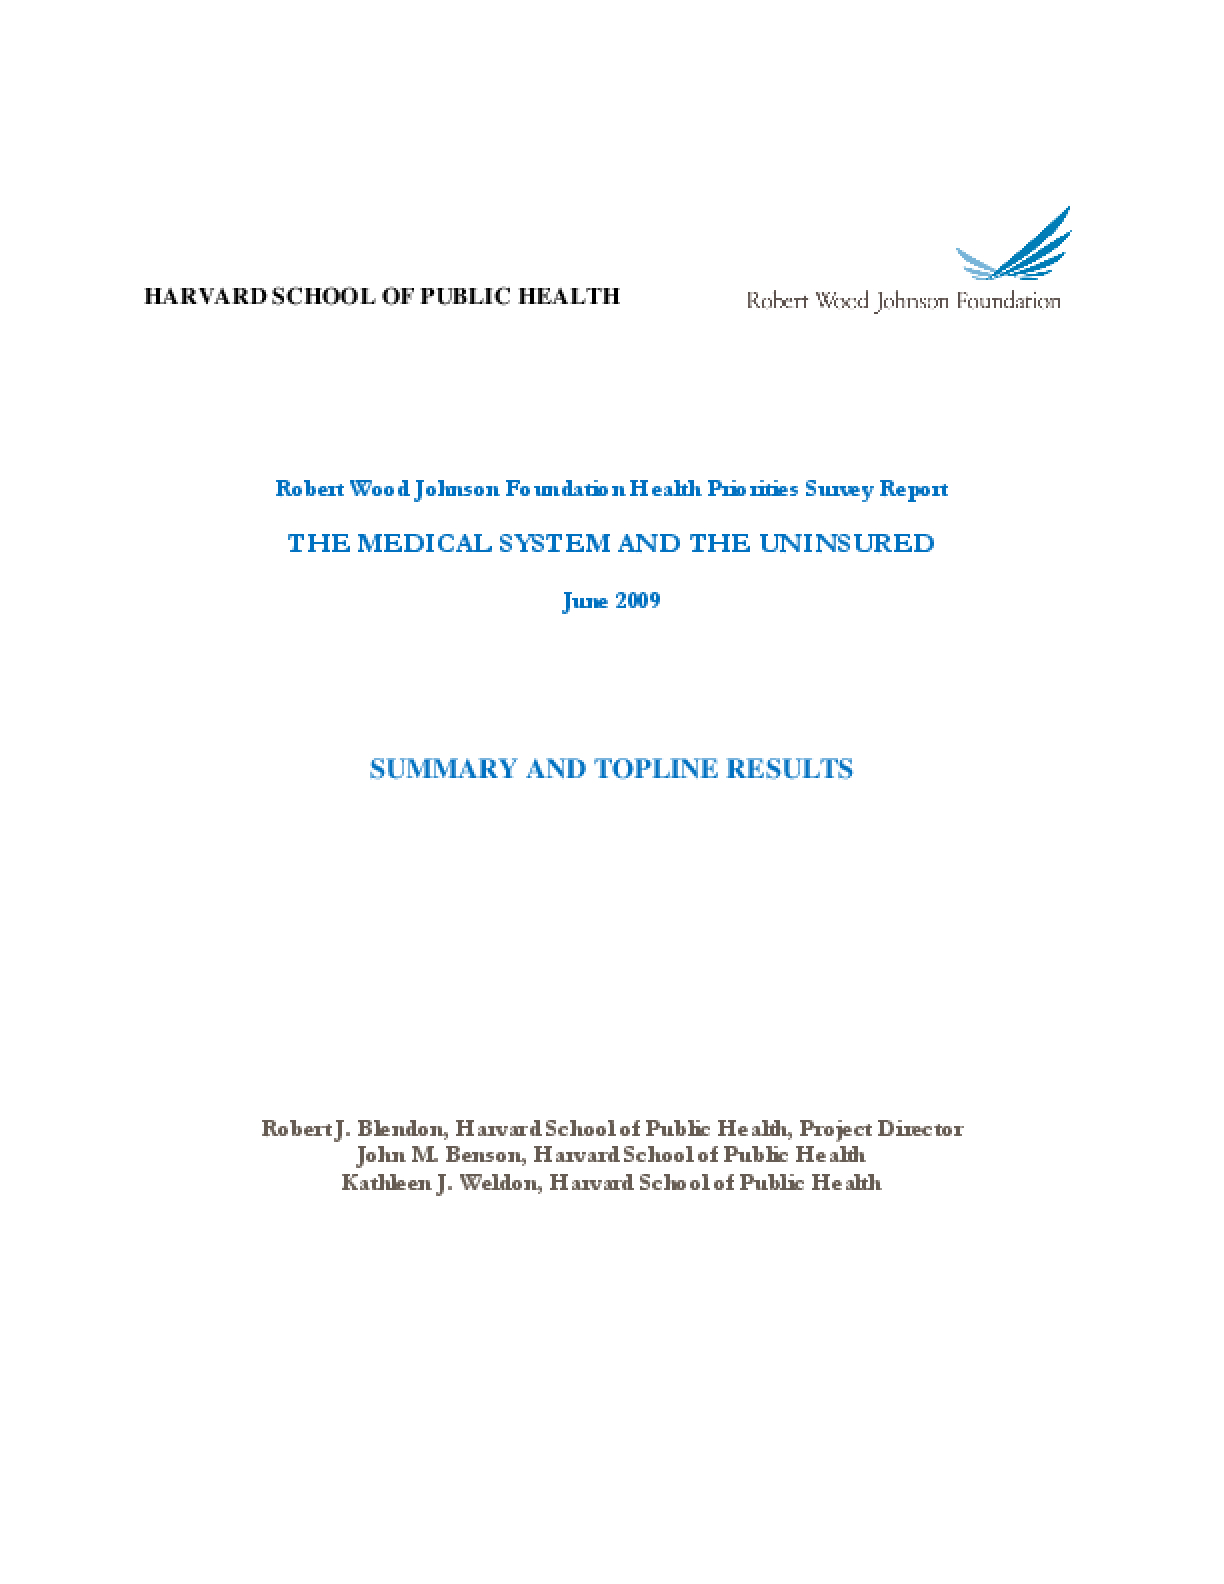 Robert Wood Johnson Foundation Health Priorities Survey Report: The Medical System and the Uninsured